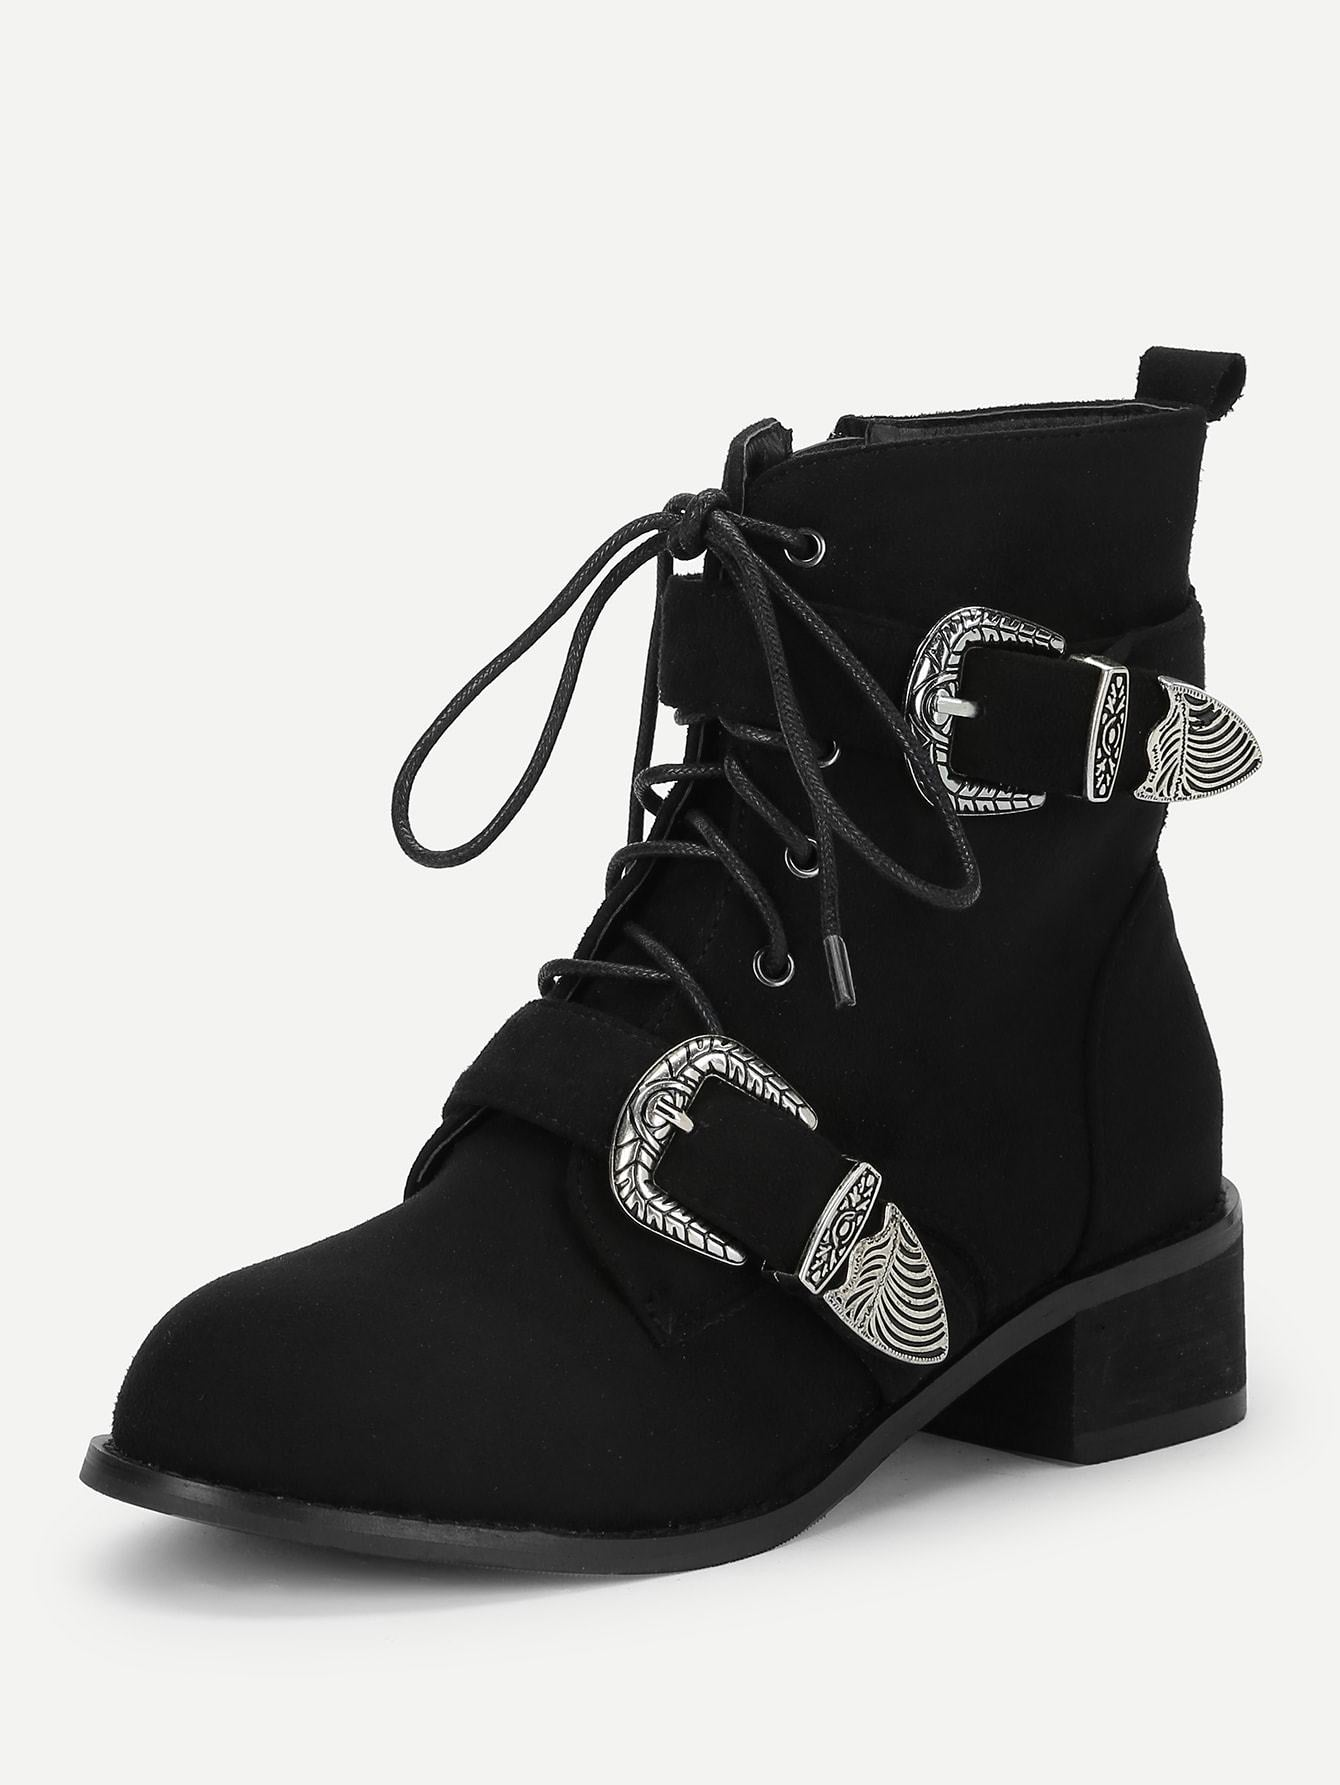 Buckle Decorated Lace-Up Boots